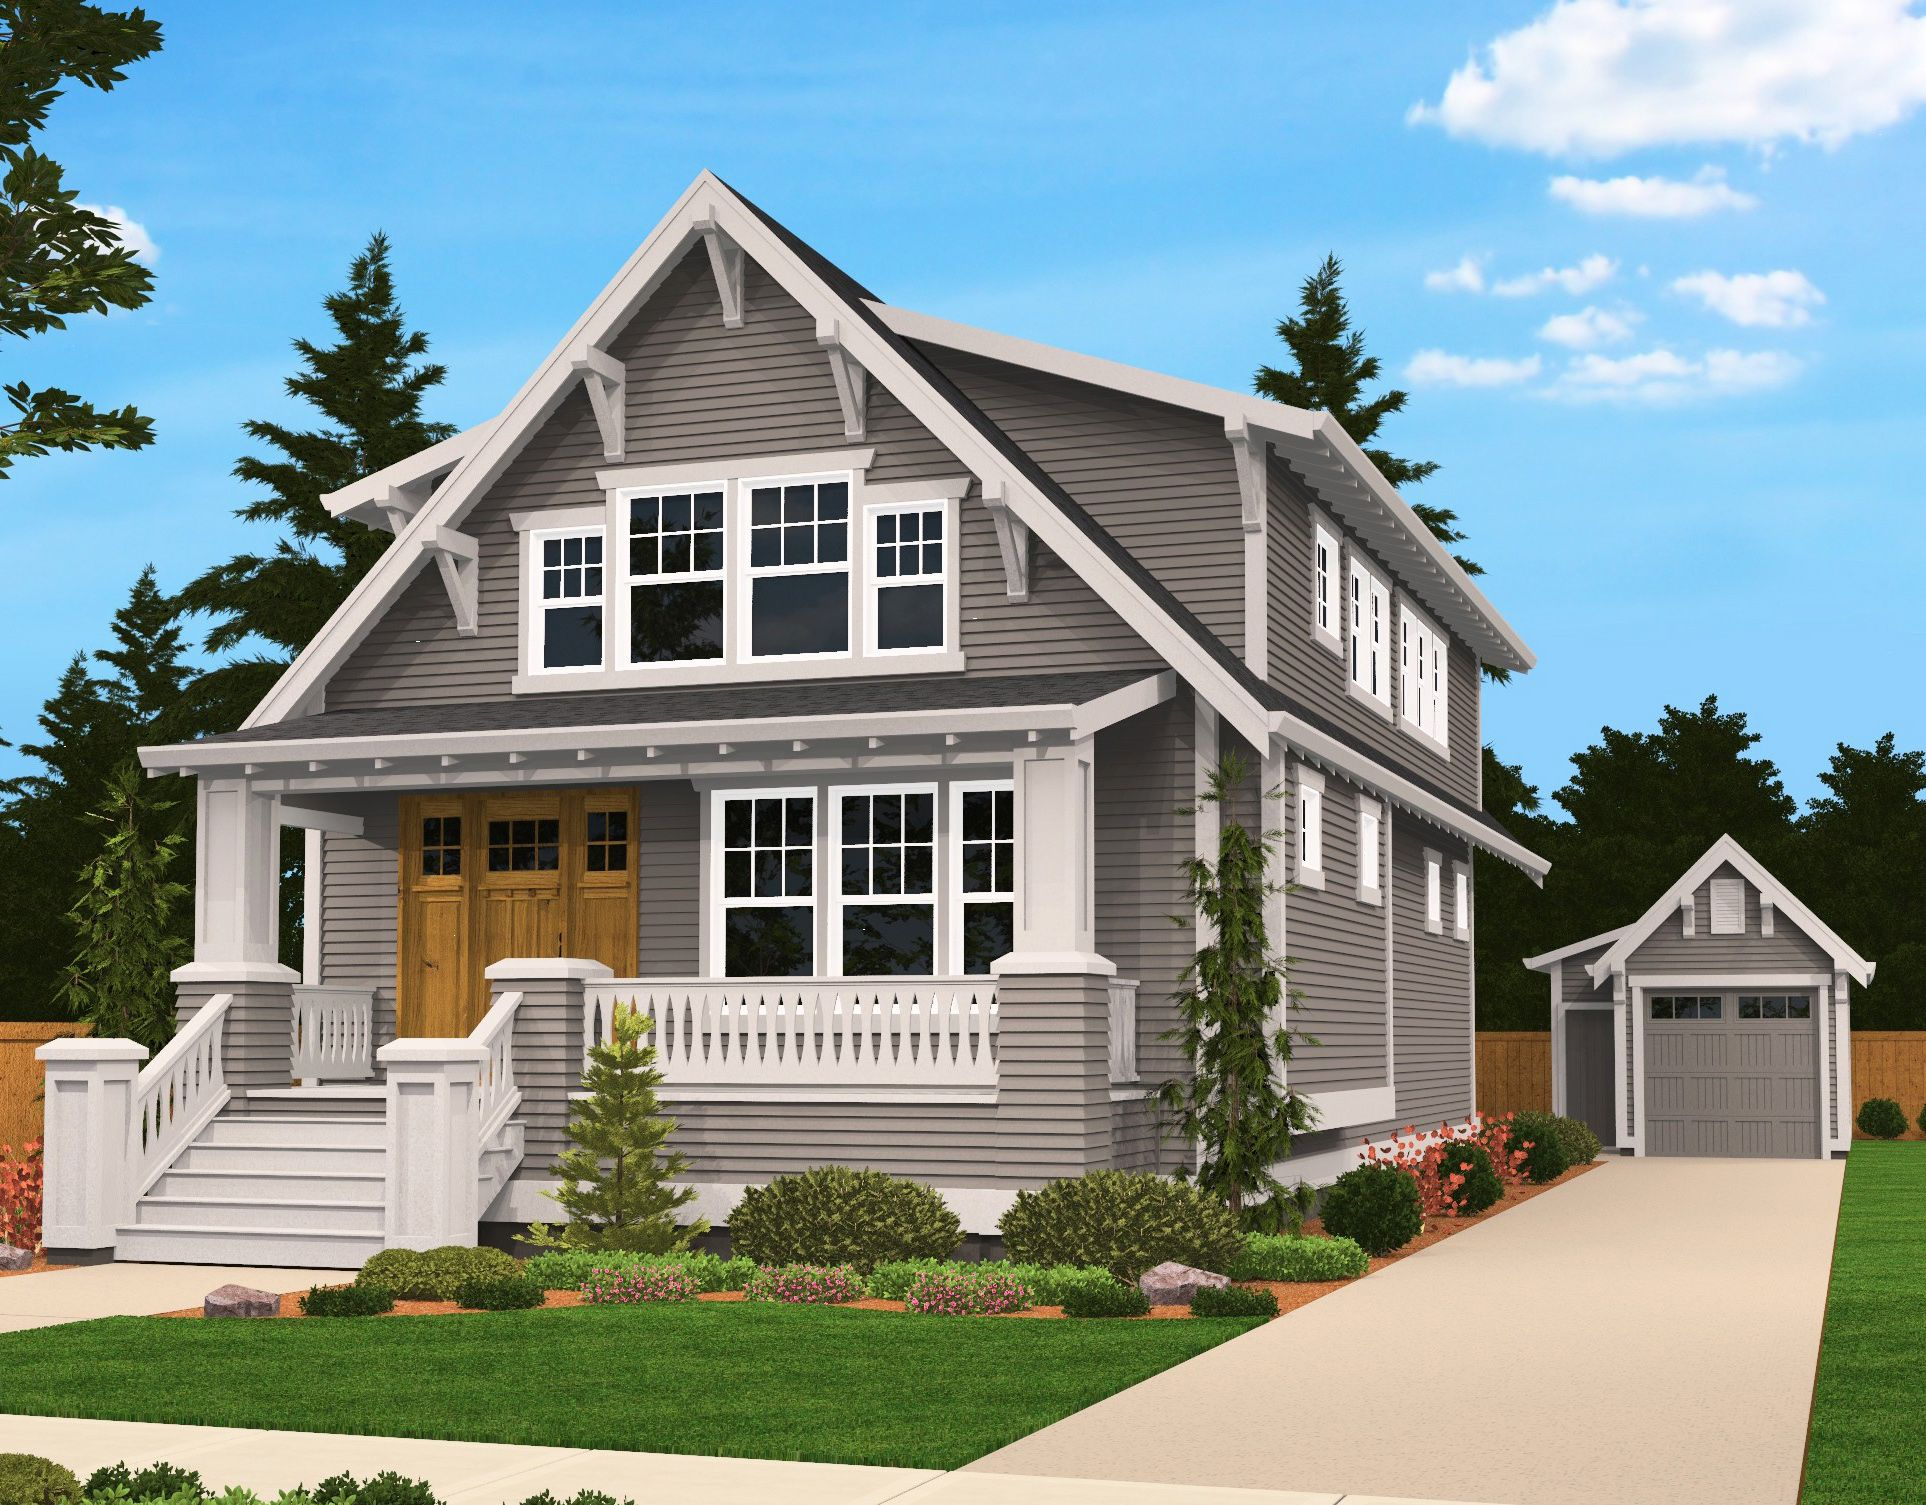 Plan 85058ms handsome bungalow house plan bungalow Bungalow houses plans